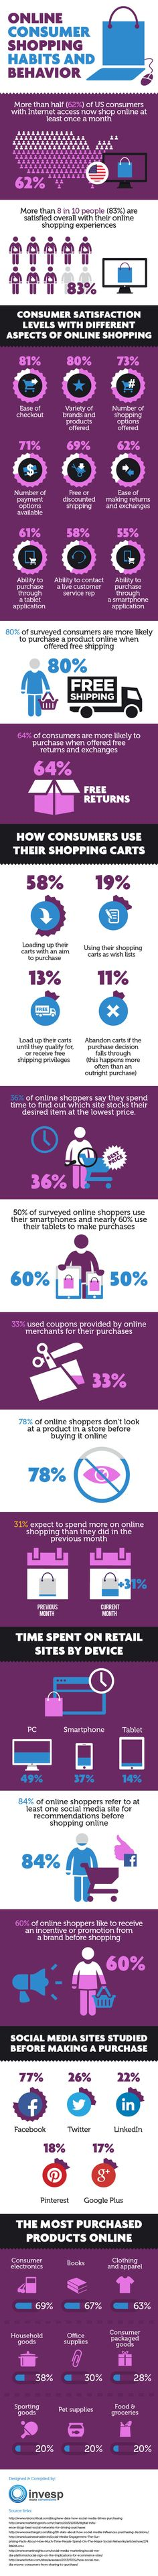 How Consumers Shop Online | Infographic - The Main Street Analyst